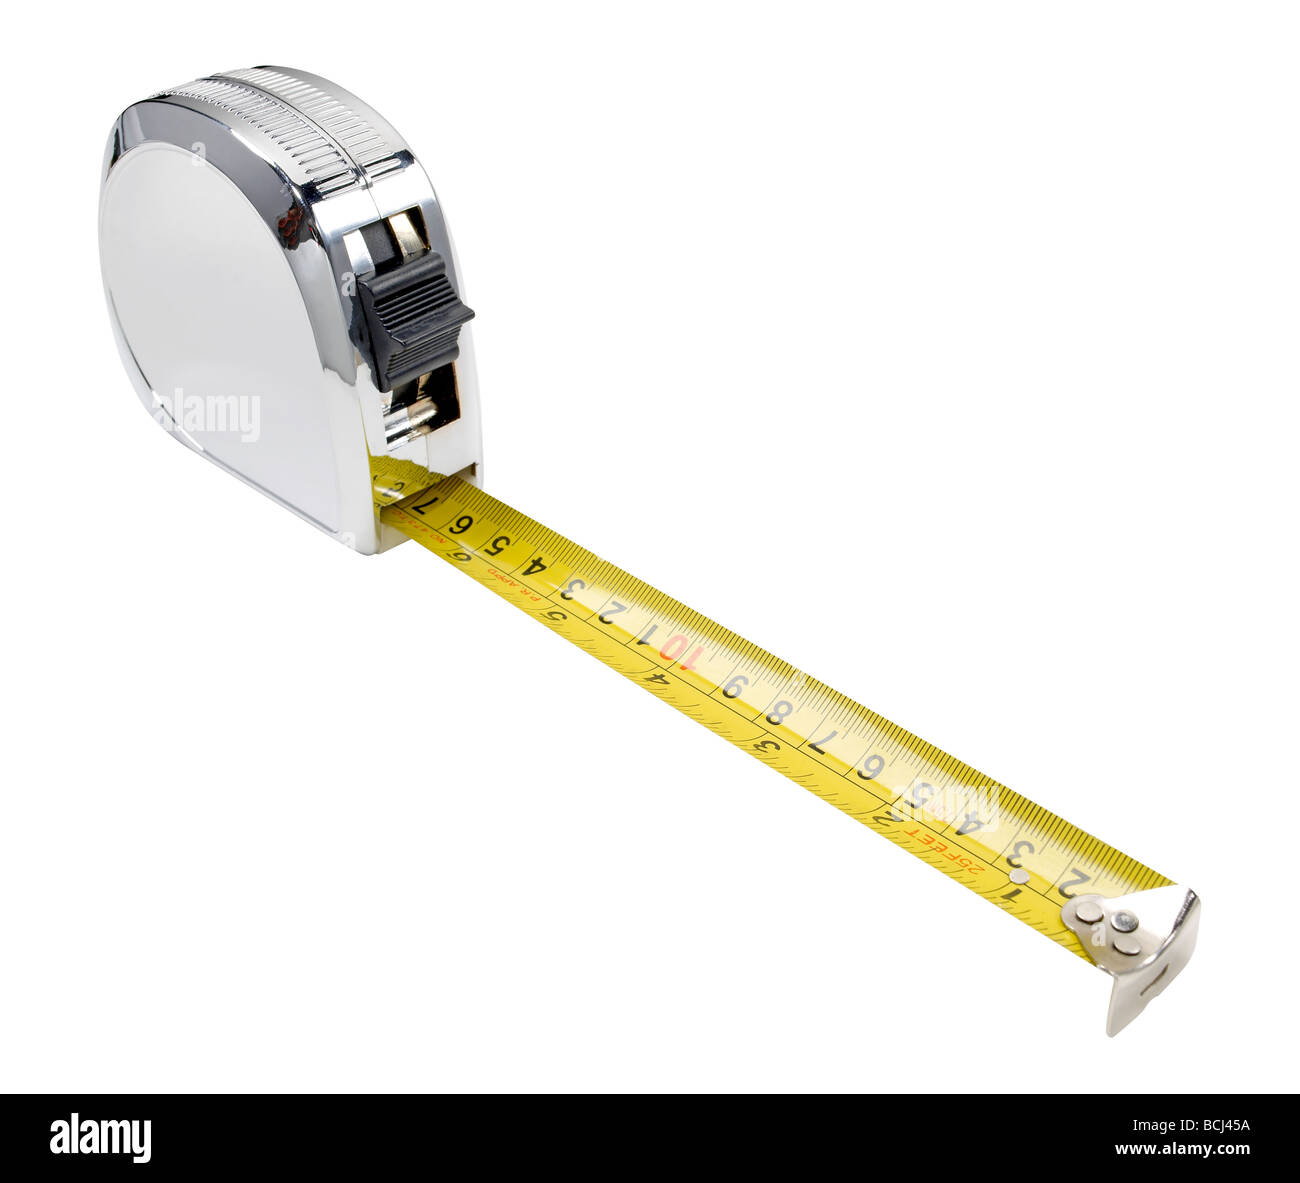 Retractable tape measure - Stock Image